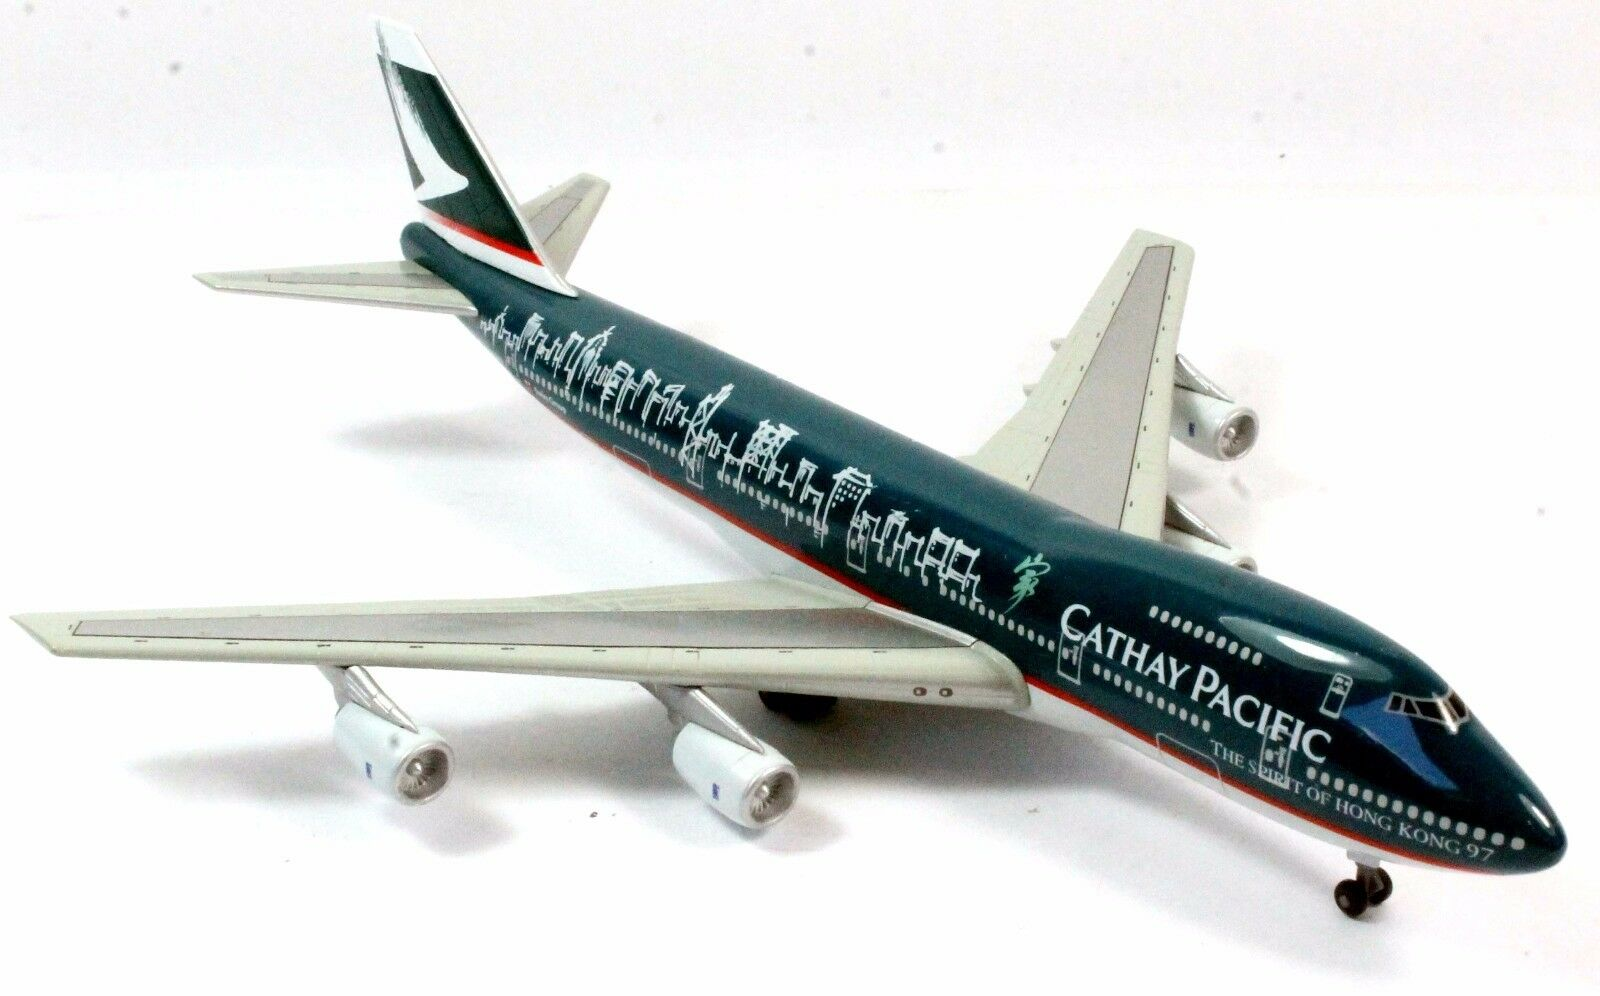 1 400 DRAGON WINGS 55101 CATHAY PACIFIC THE SPIRIT OF HONG KONG 10O